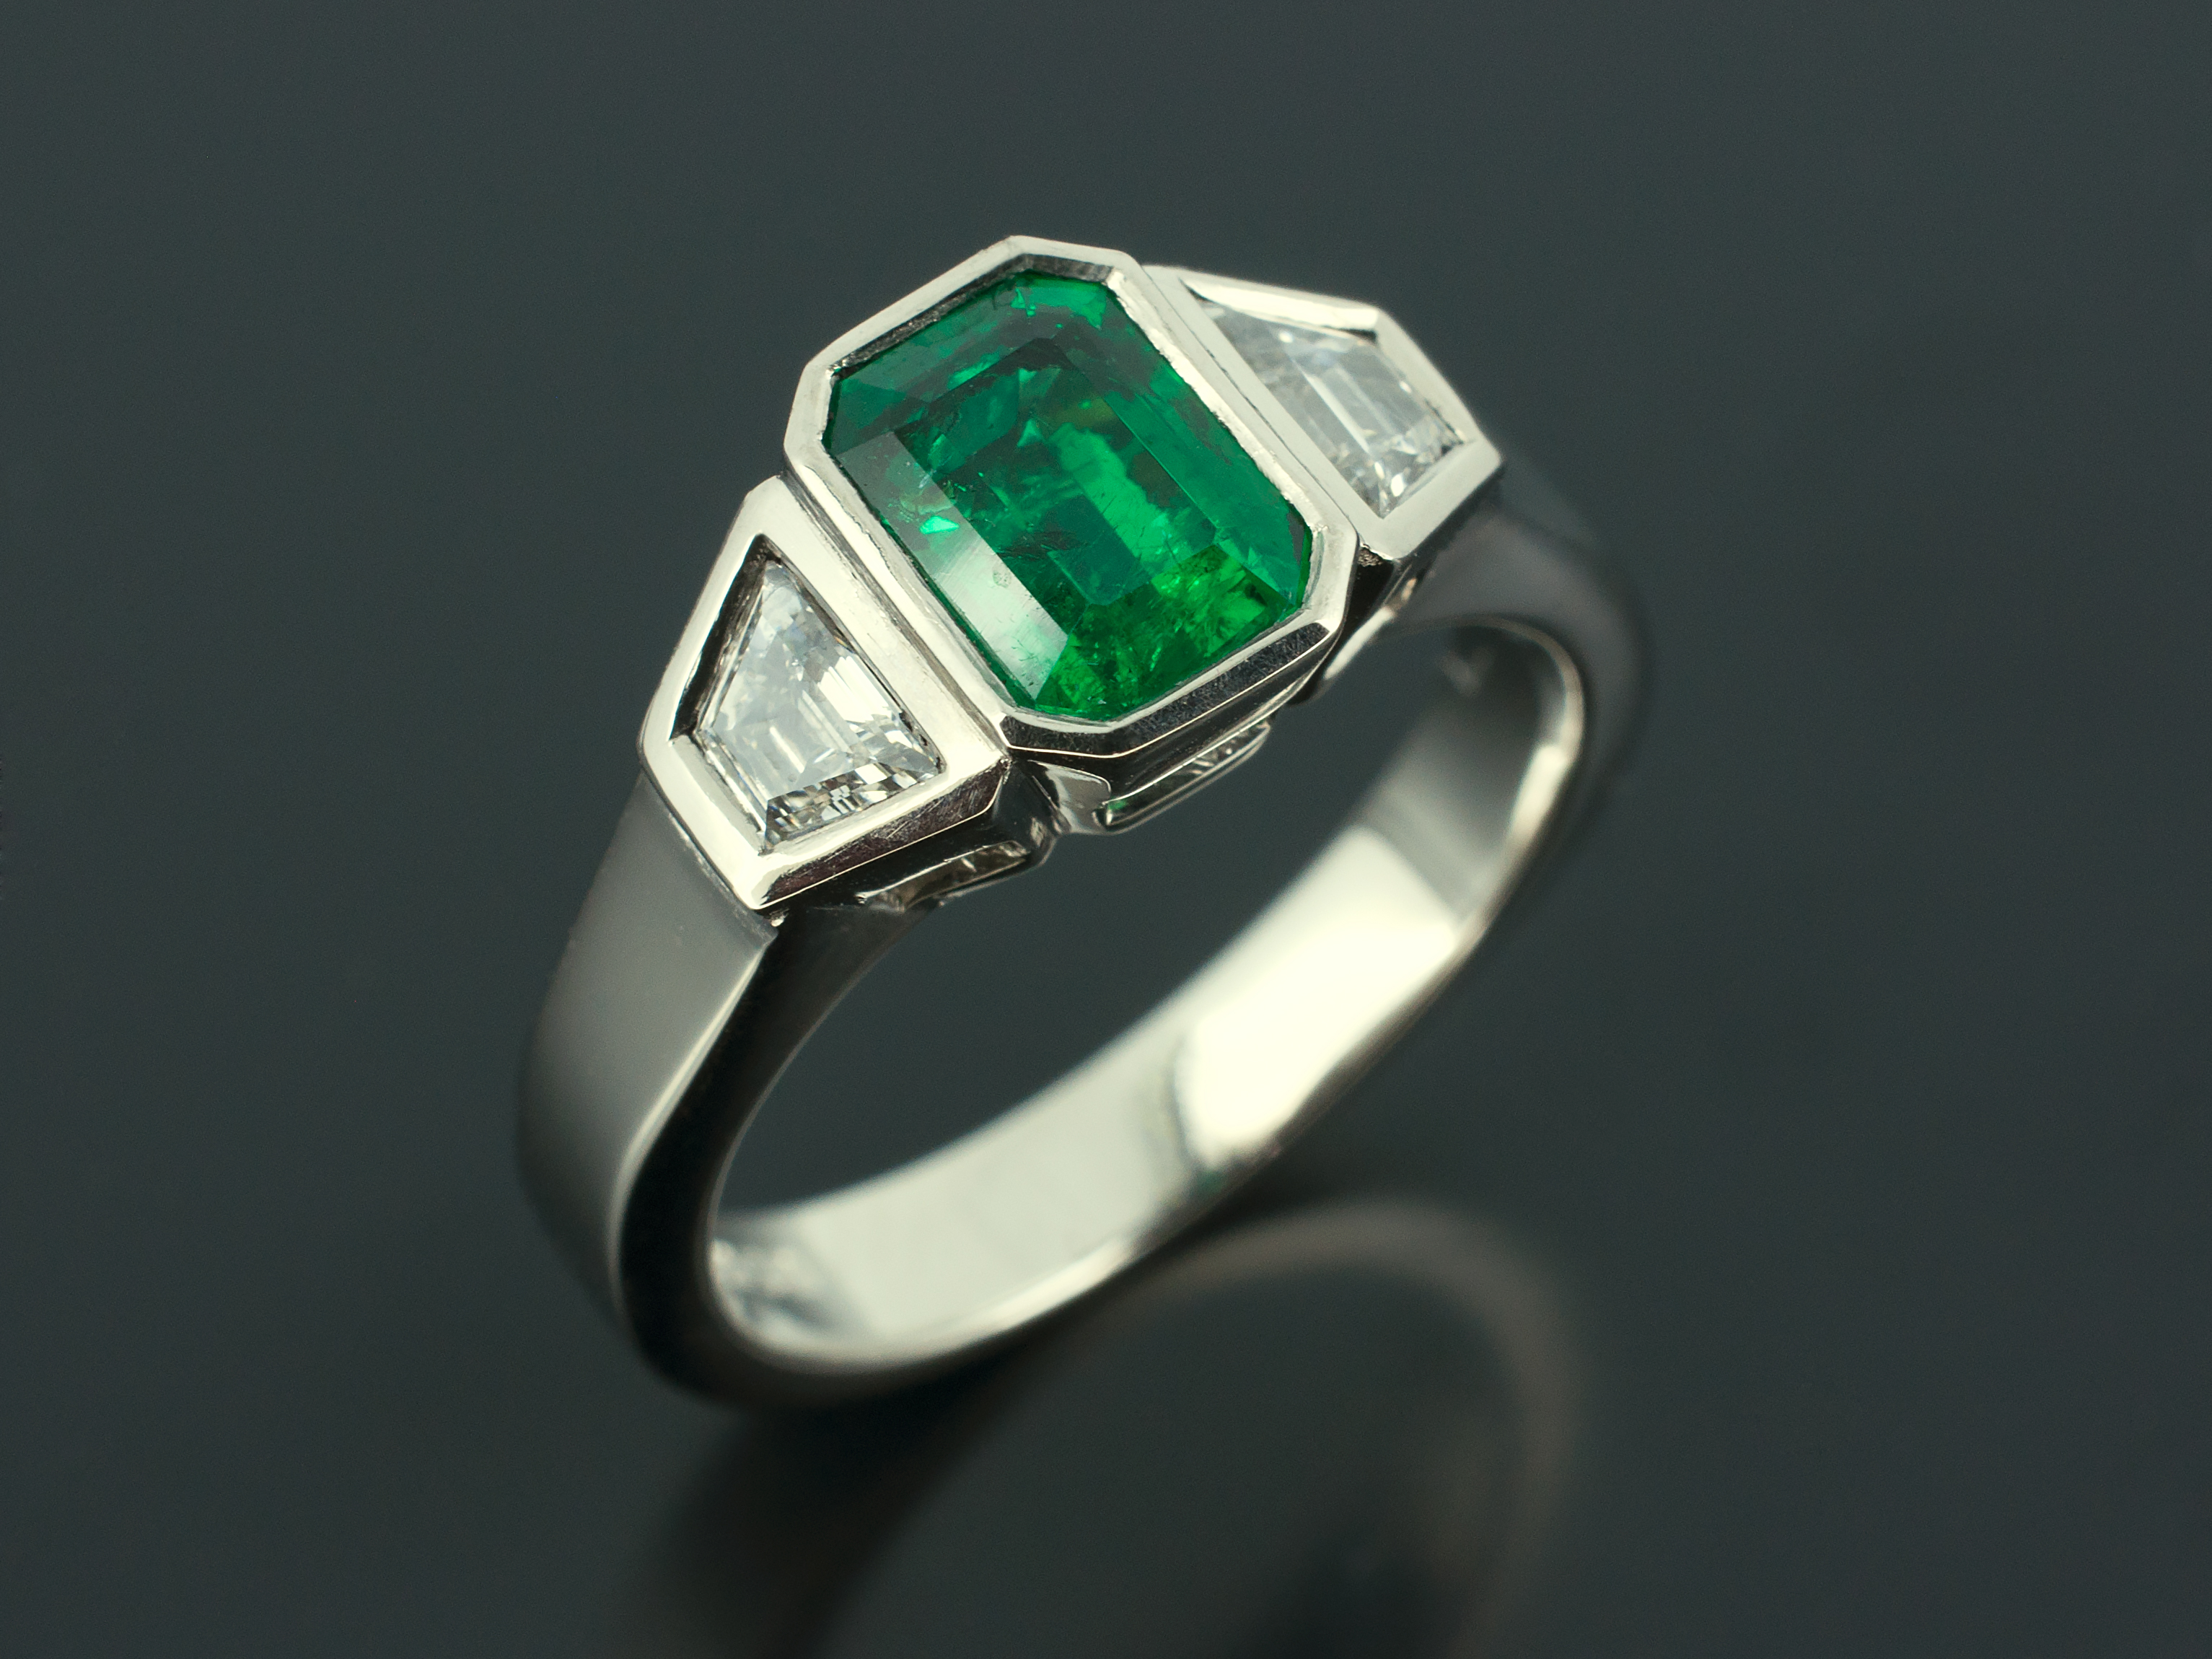 classic wedding rings trilliant a emerald diamond cut with stones ring collections emerlad graff featuring side square